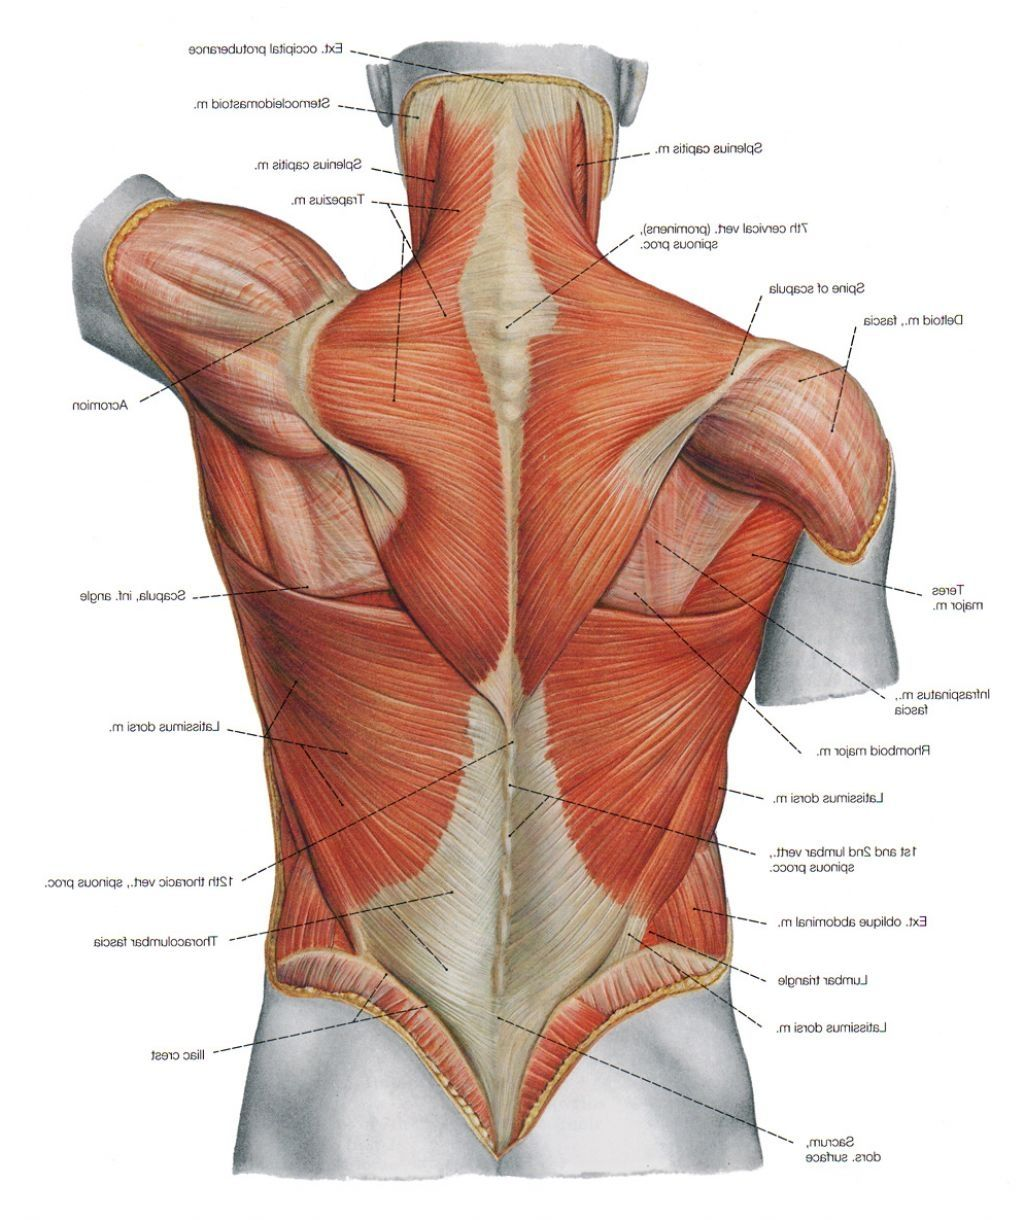 pin by reyman panganiban on anatomy in 2019 shoulder muscle back muscles diagram pain back diagram muscles [ 1024 x 1220 Pixel ]